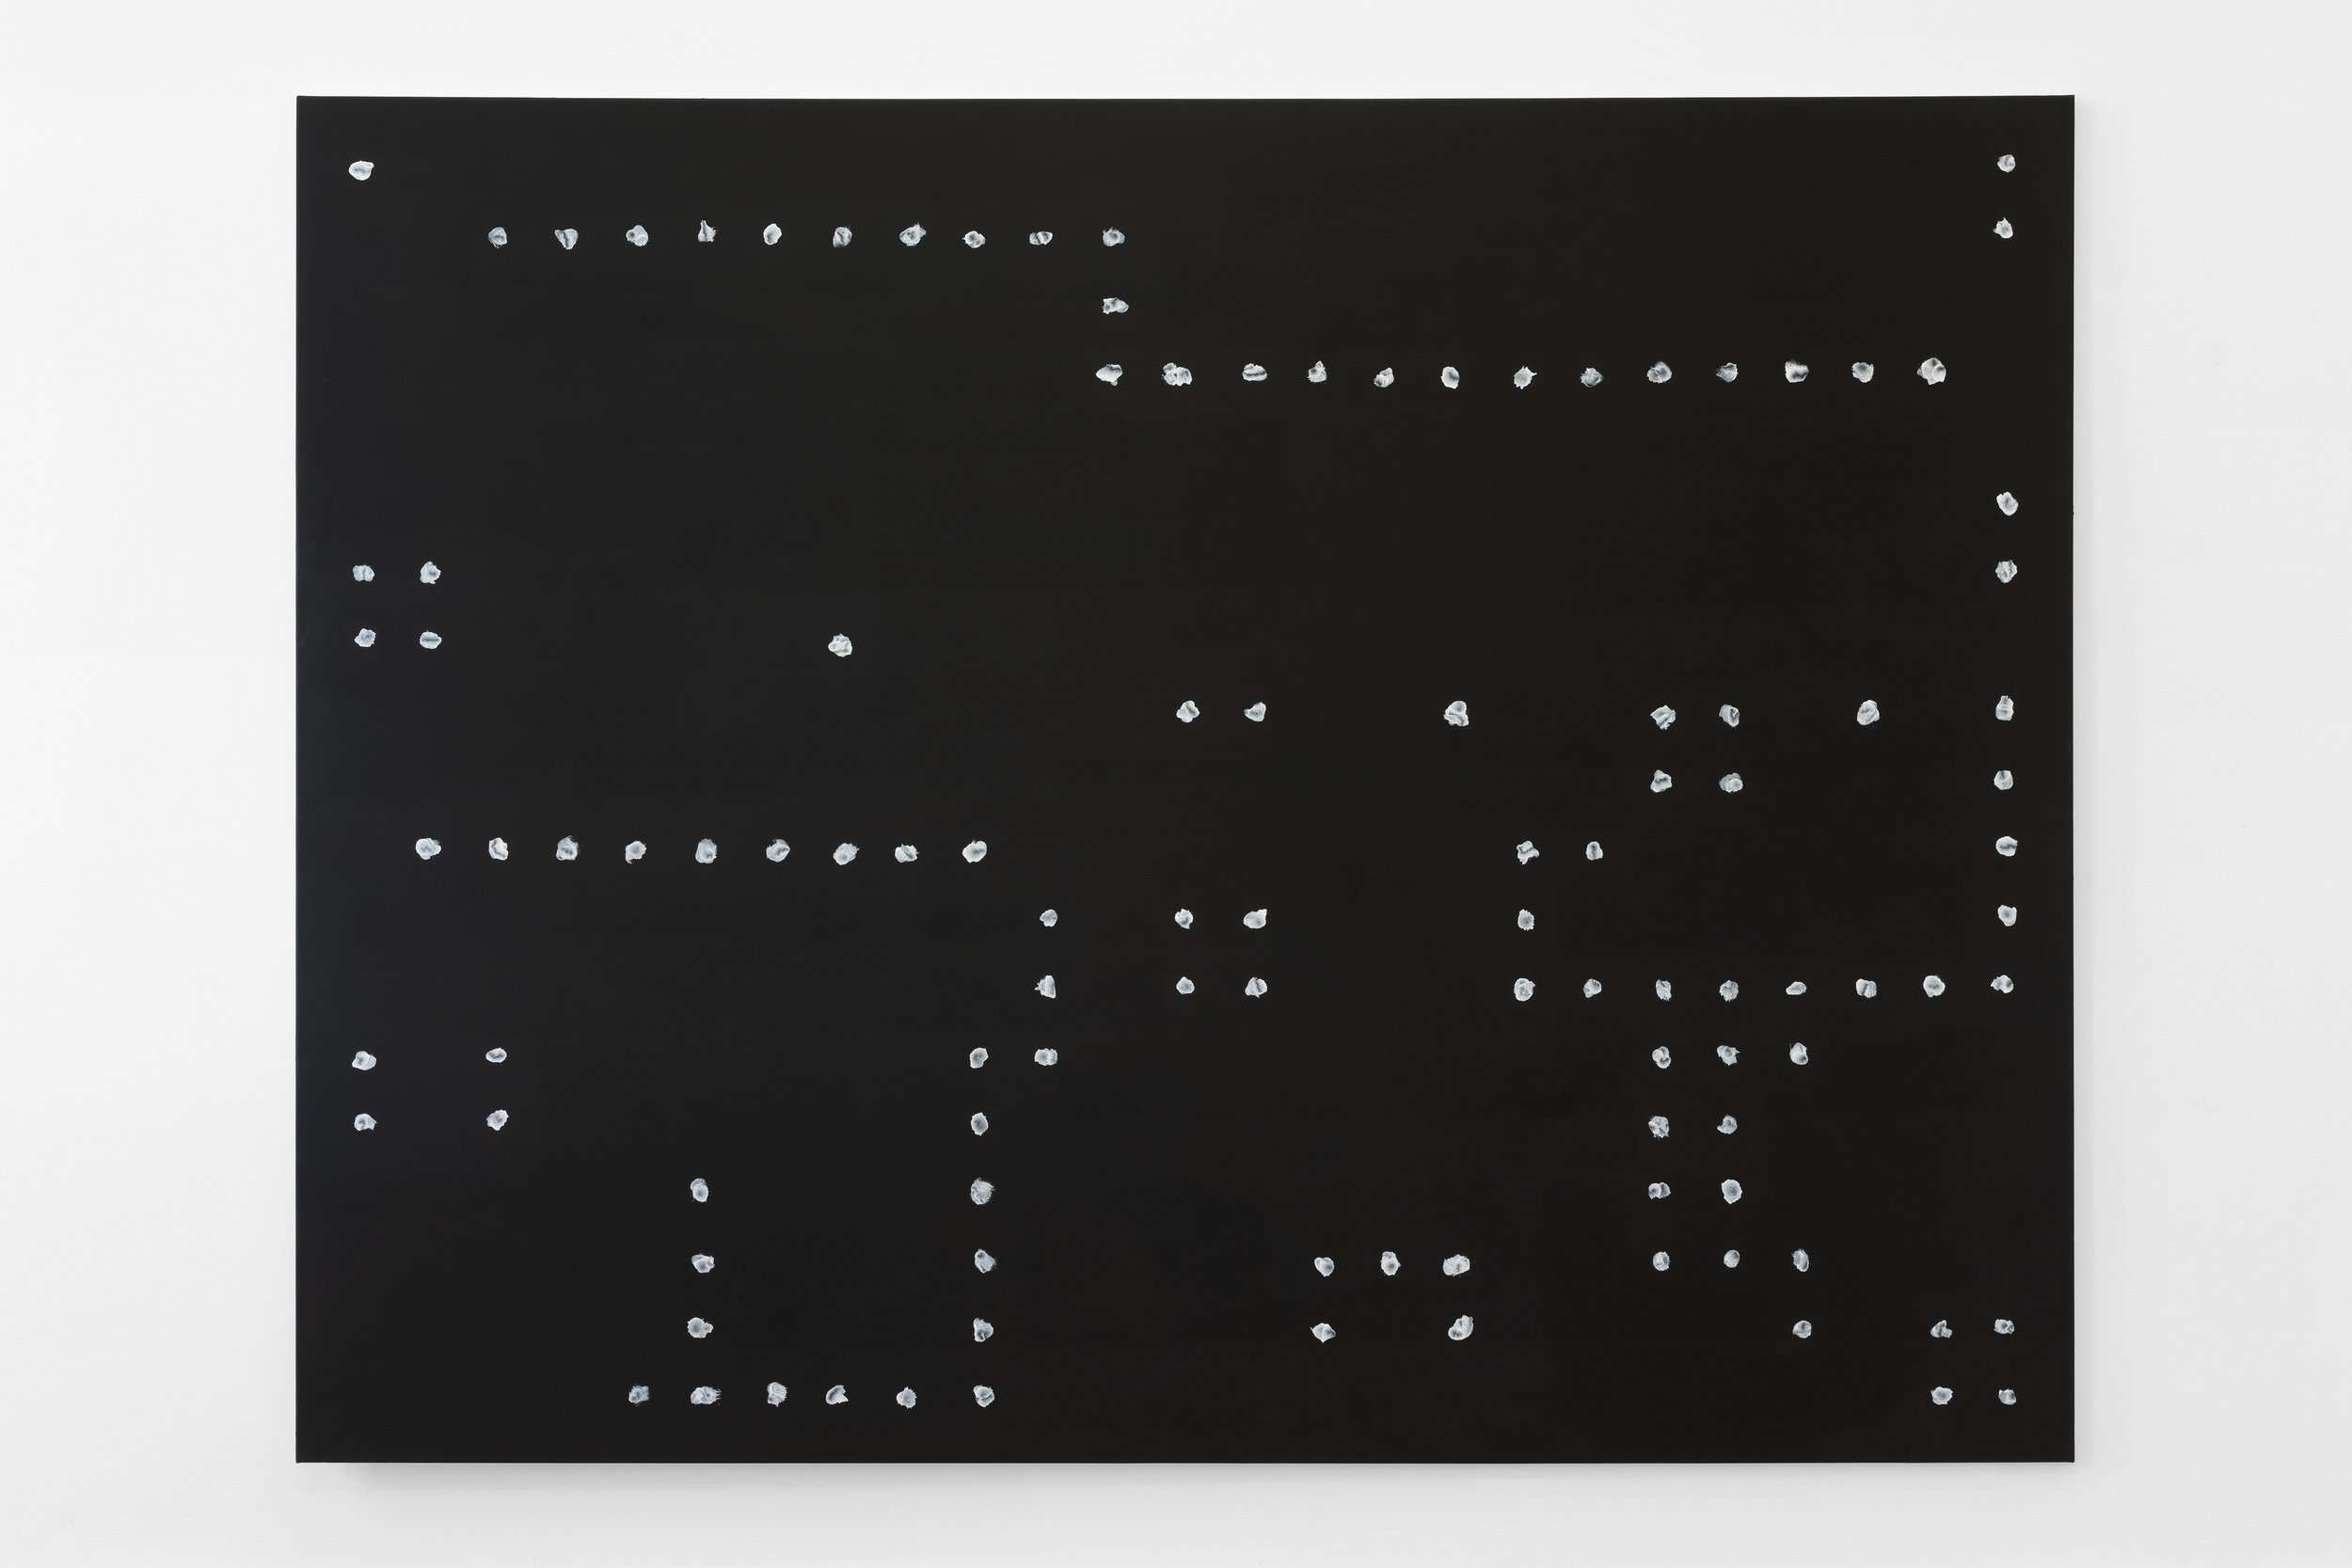 Jeff Zilm,  An Anti-Algorithmic Painting in Memory of Jack Burnham , 2019 Acrylic, black gesso and optical sound on canvas 200 x 260 cm